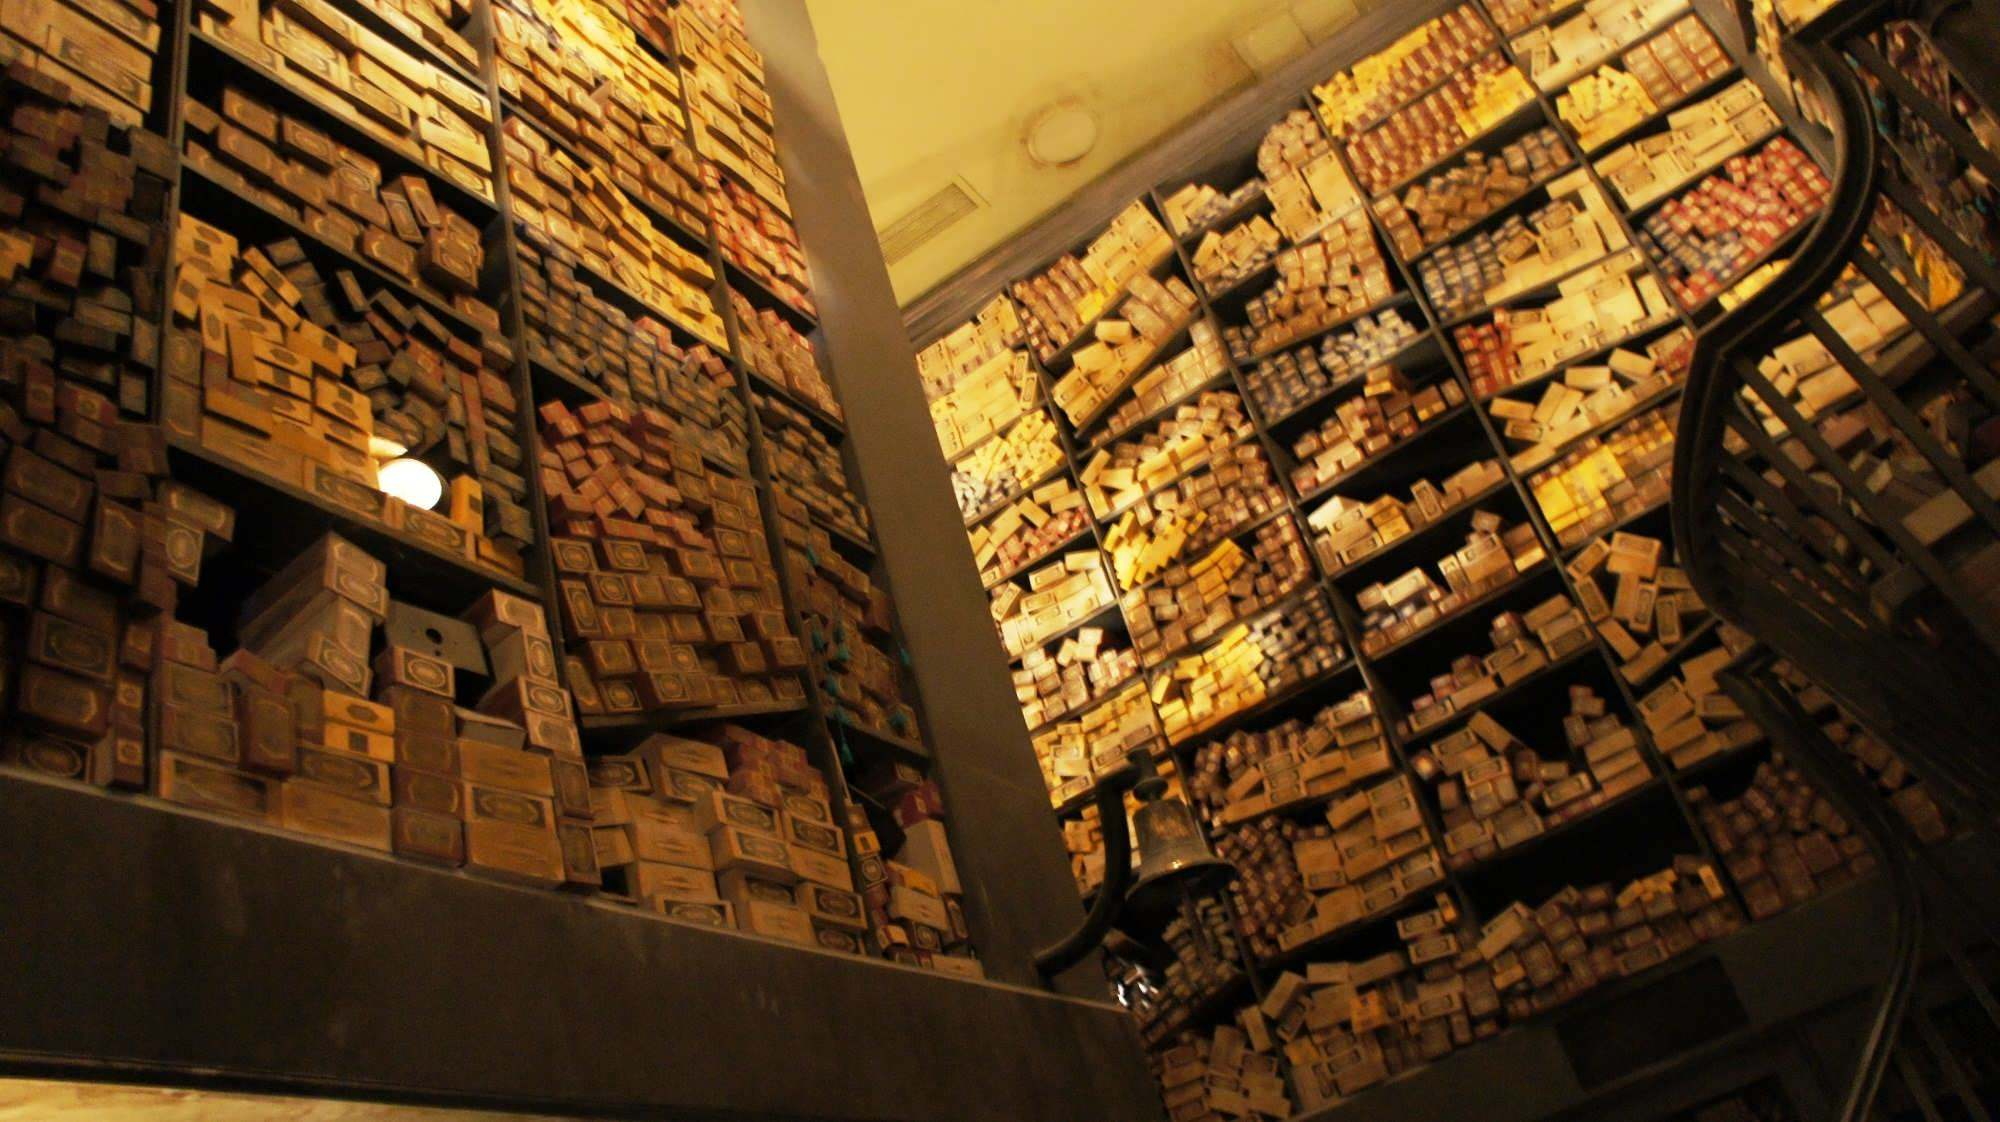 Ollivanders wand collection